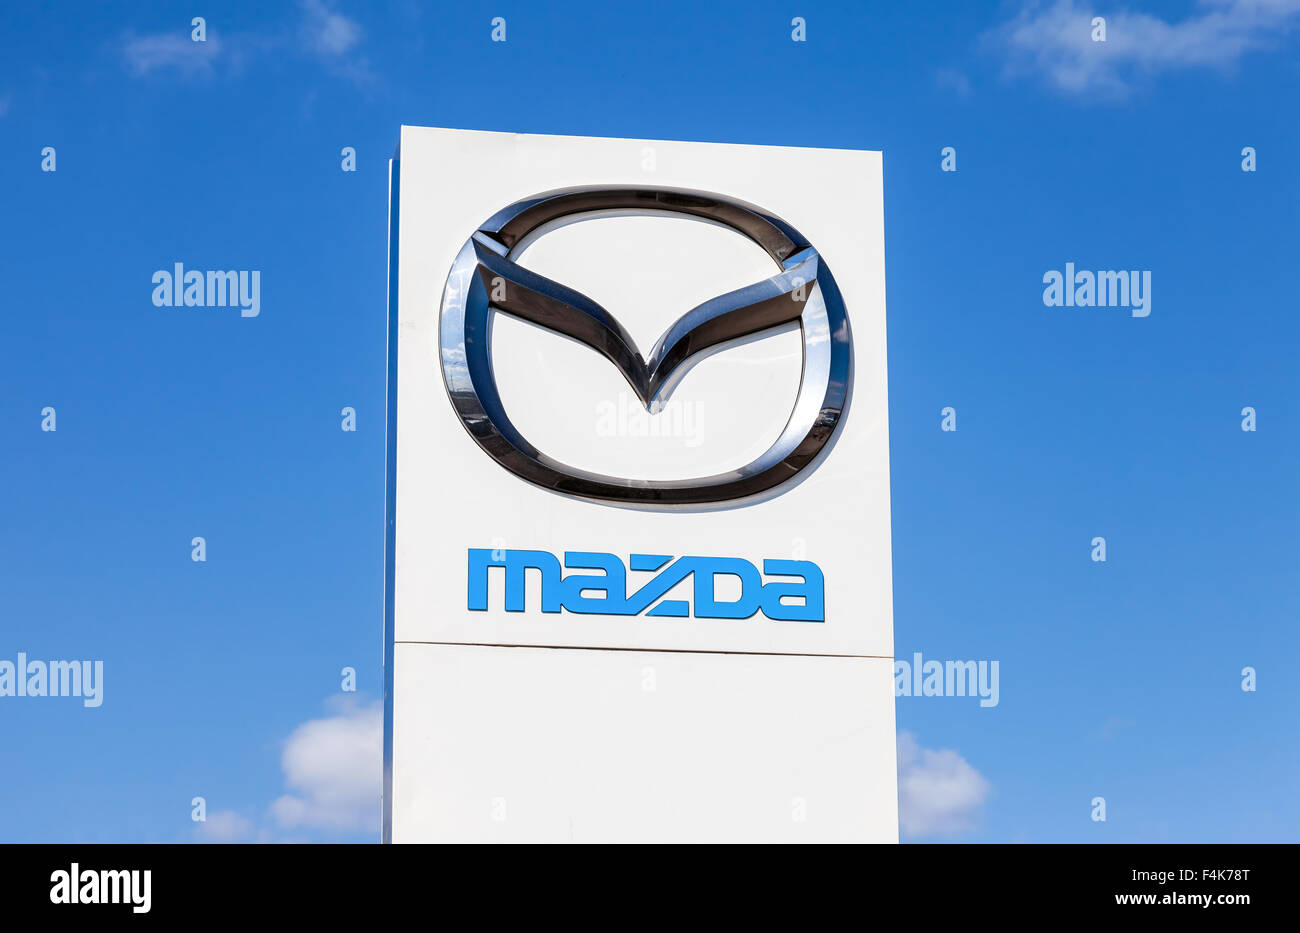 Official Dealership Sign Of Mazda Mazda Motor Corporation Is A